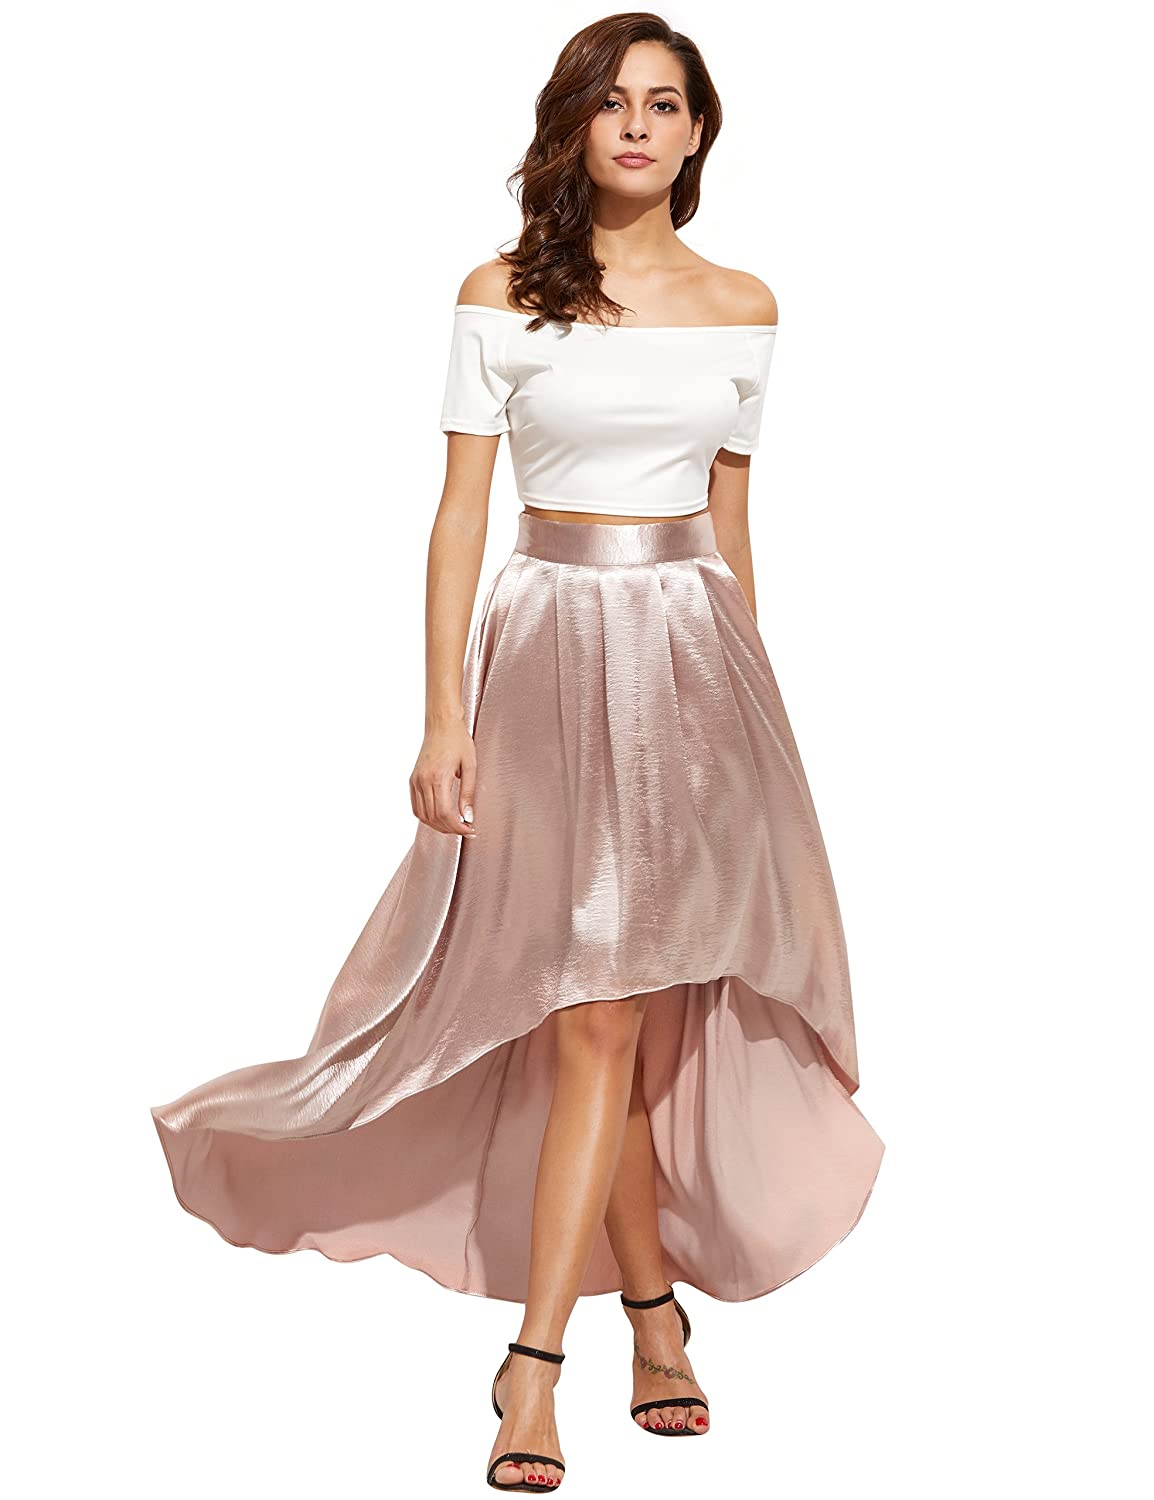 dress - How to high wear low skirt formal video